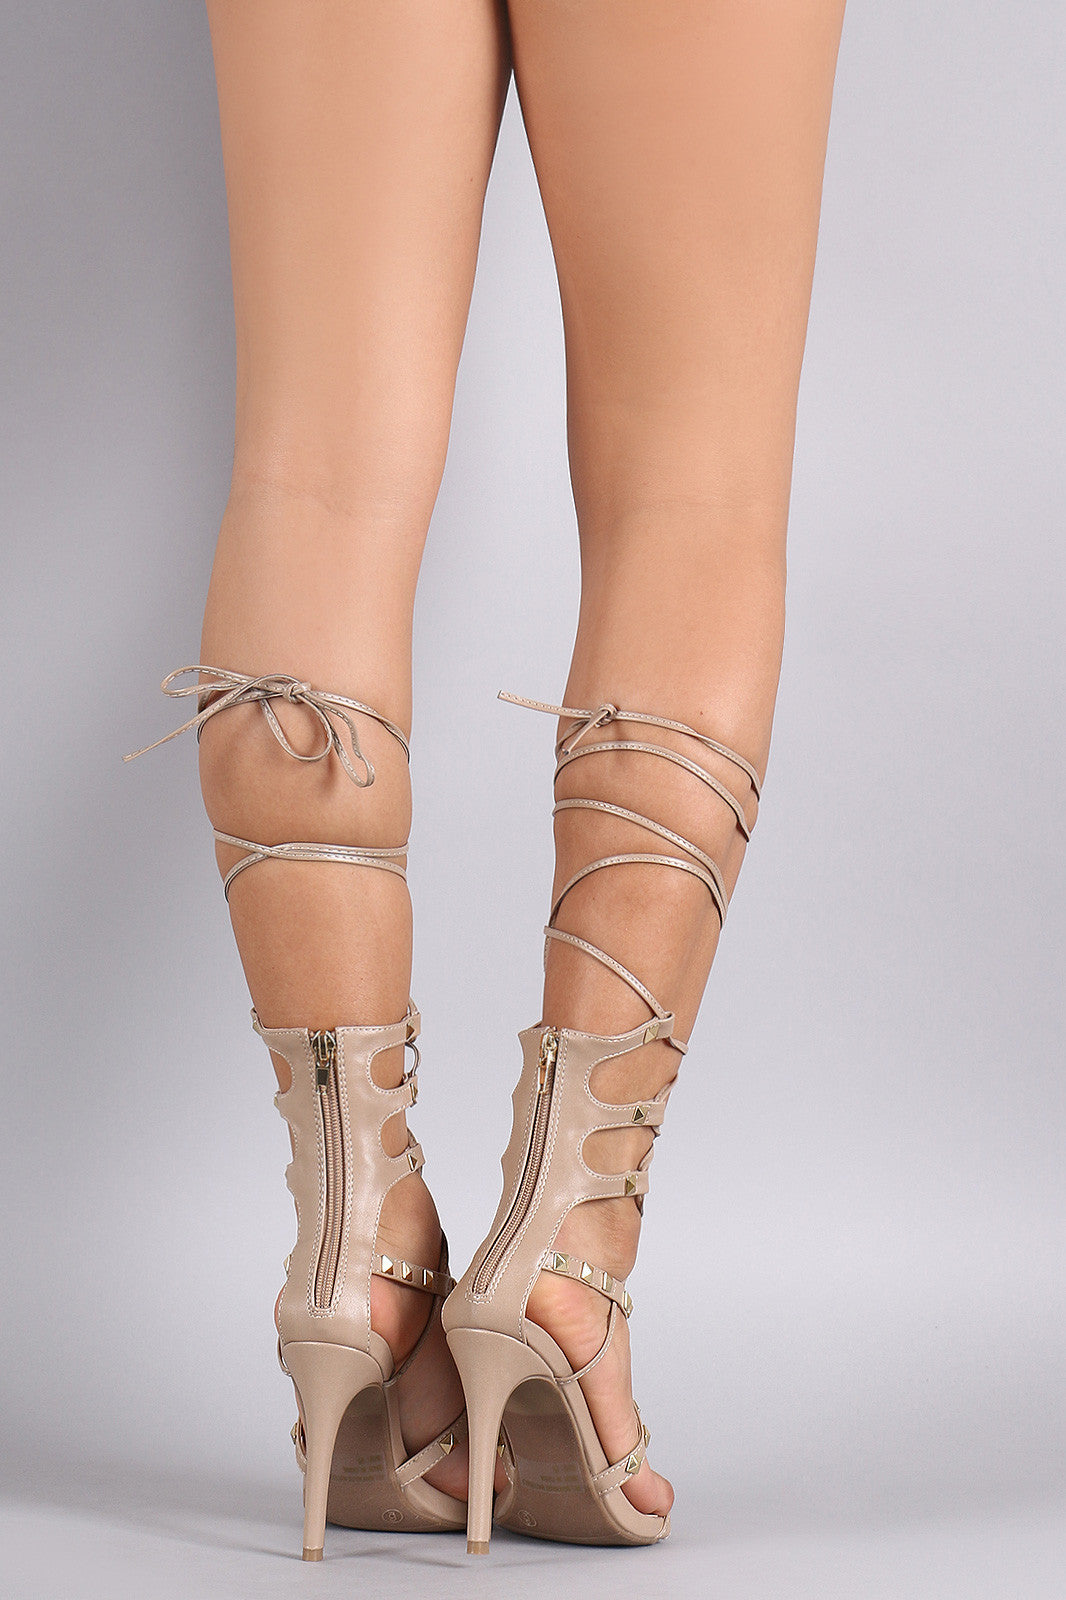 Wild Diva Lounge Studded Strappy Lace-Up Heel - Thick 'N' Curvy Shop - 2